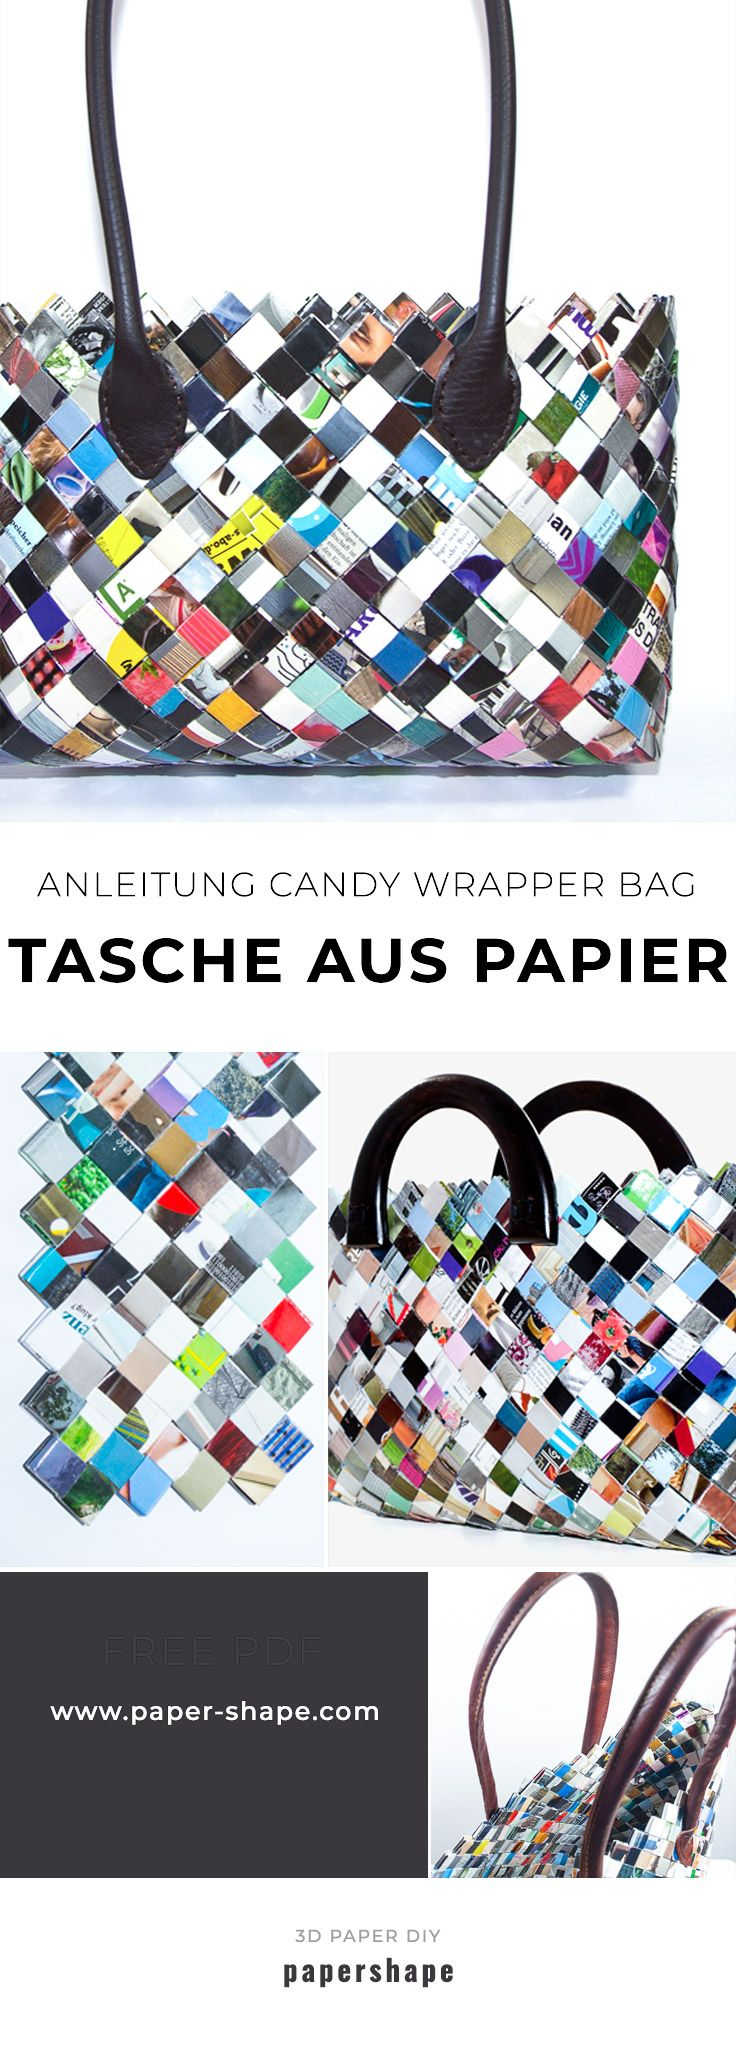 Make bags yourself from magazines (Candy Wrapper Bag)